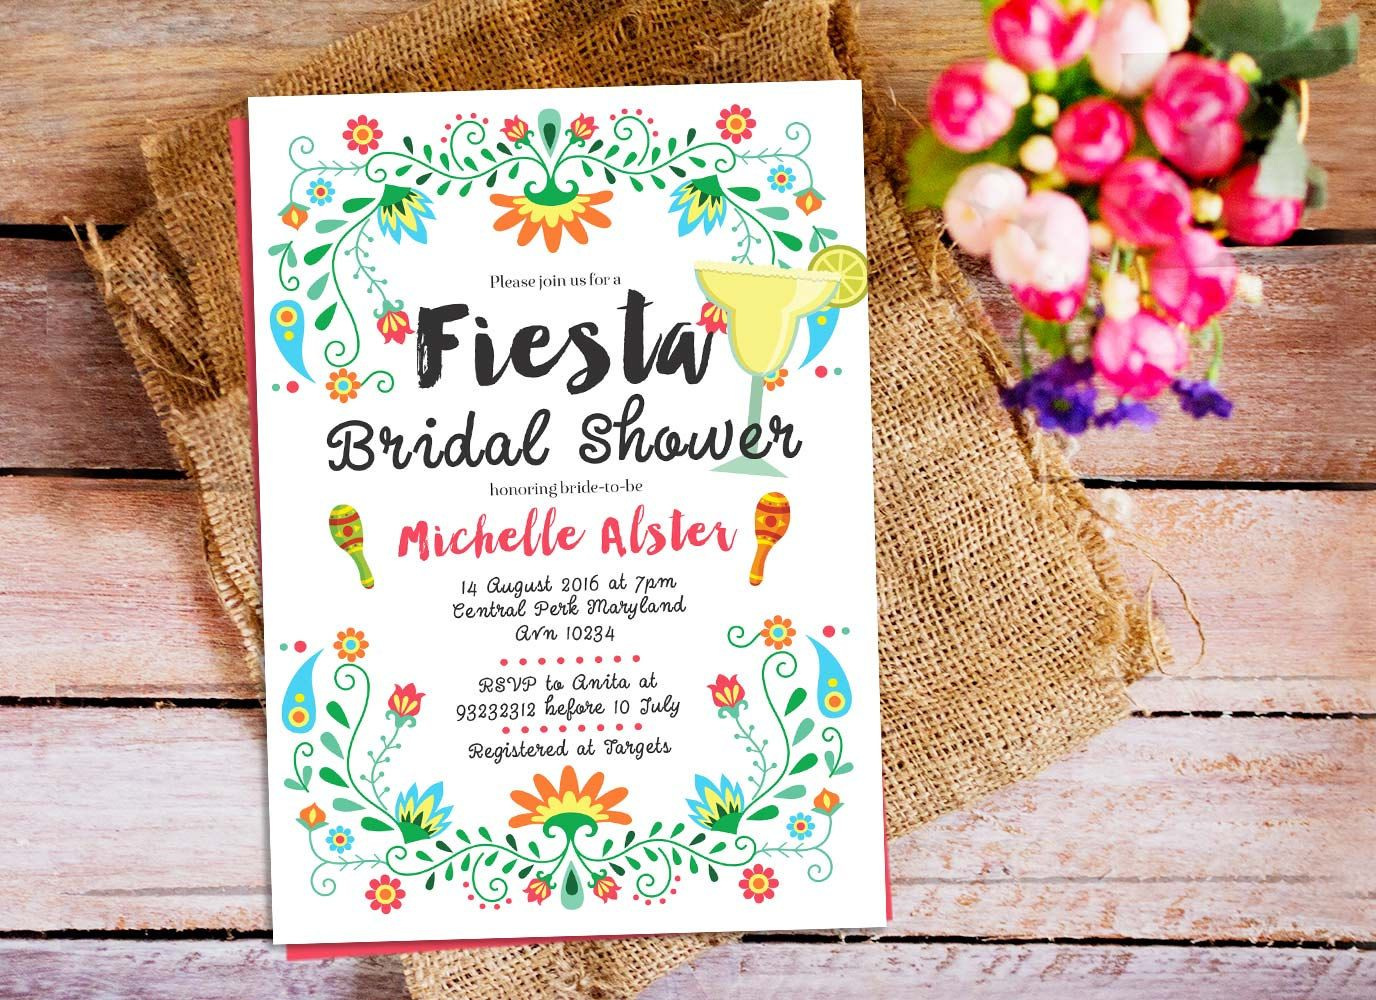 Sangria Wedding Invitations: Image Result For Sangria Printable Party Invites Wedding